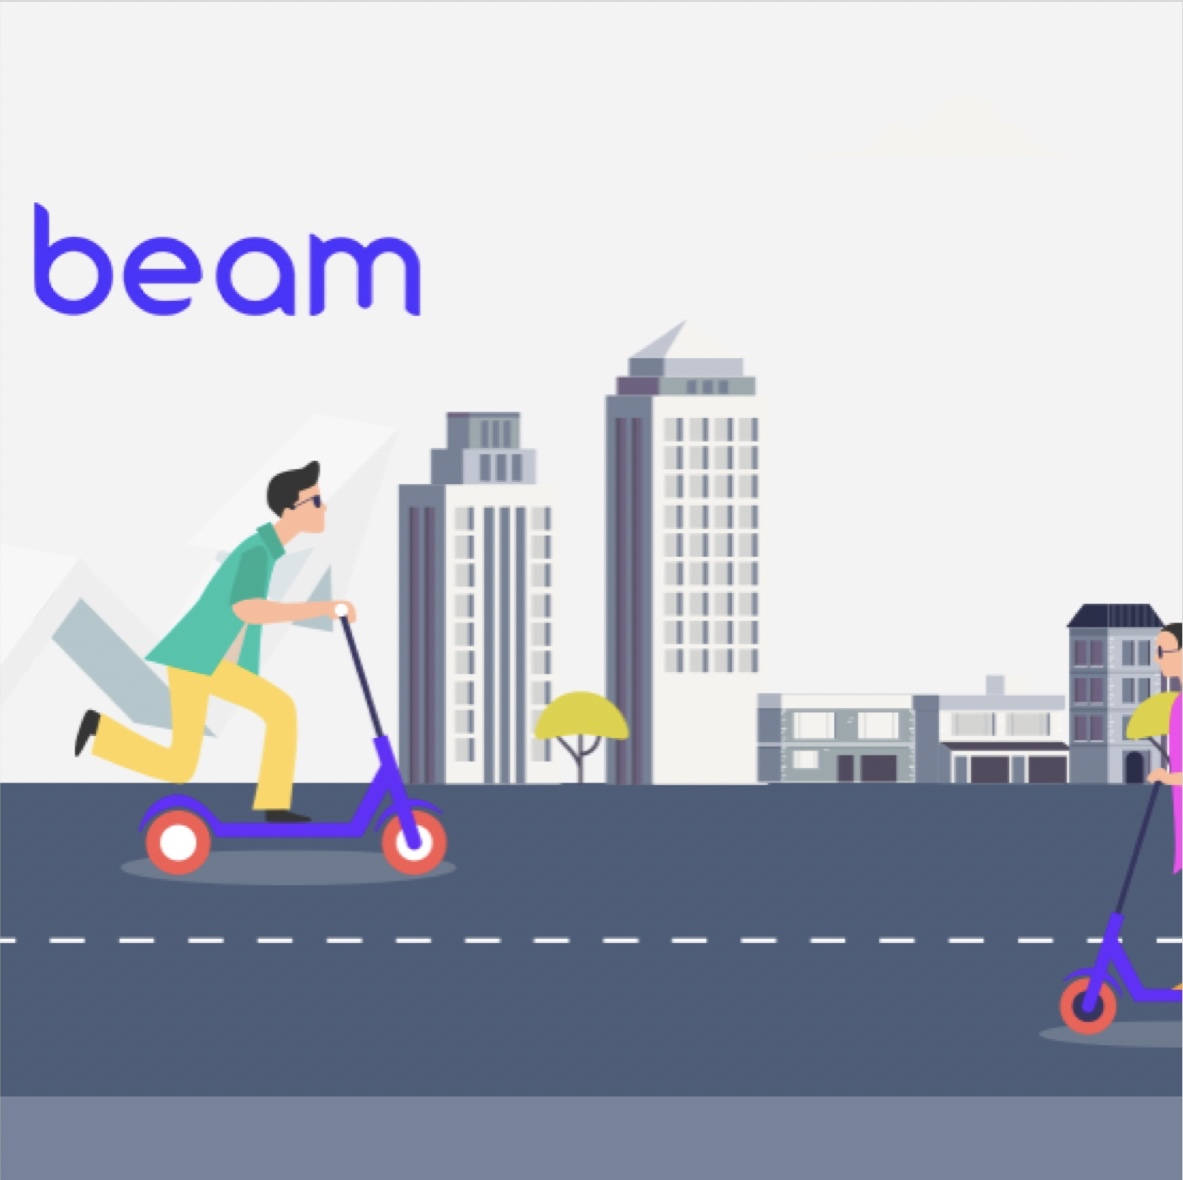 Beam   App-based scooter rental service    Co-invested with Sequoia Capital